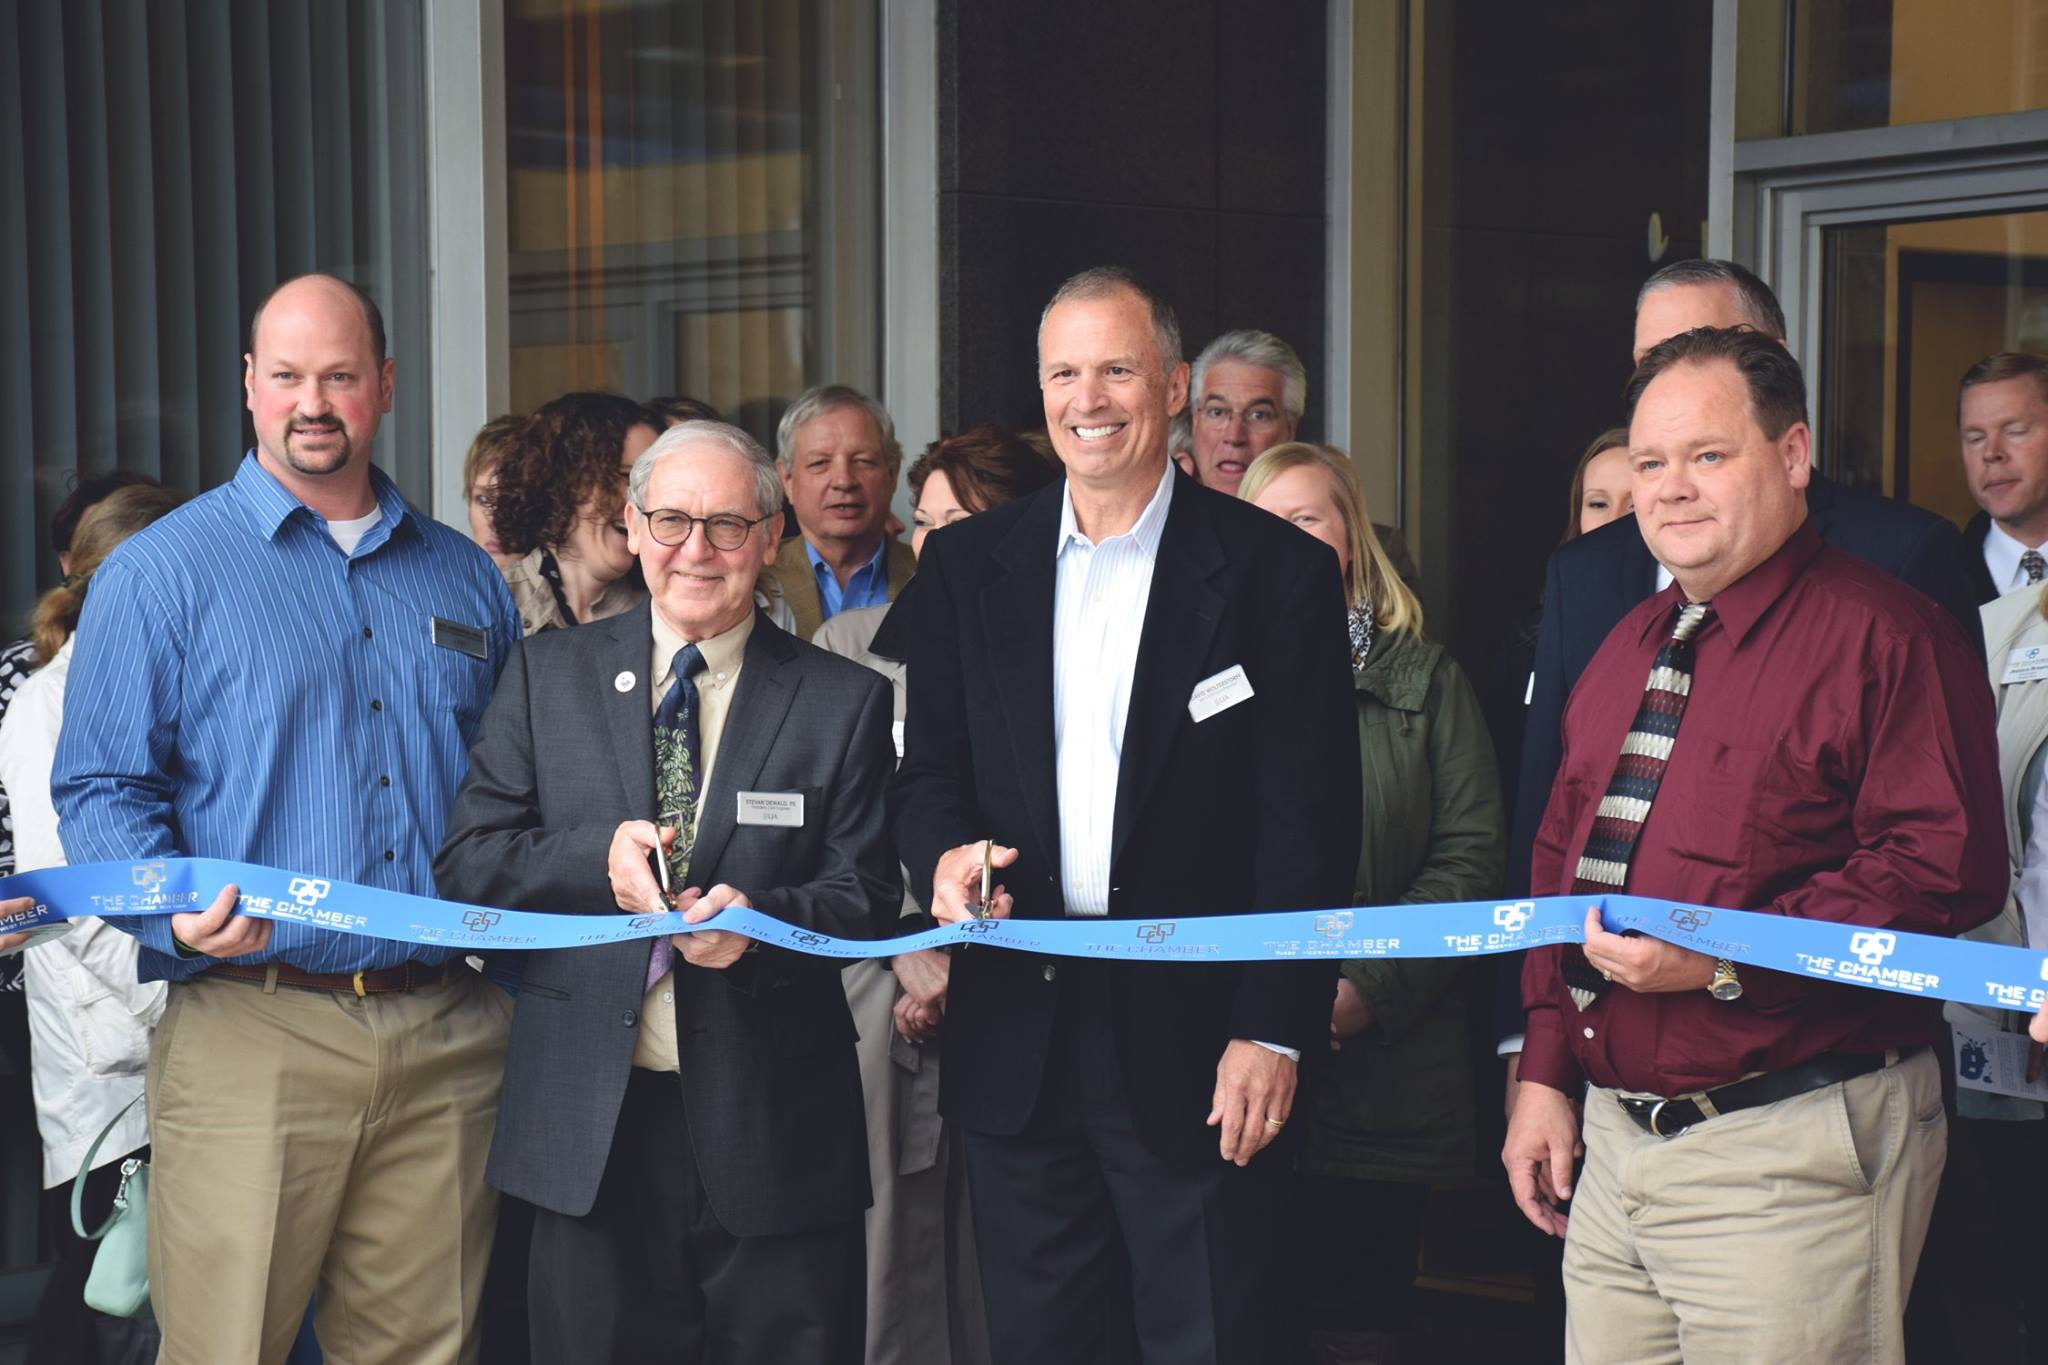 Ribbon cutting ceremony with the Fargo - Moorhead Chamber of Commerce celebrating the acquisition.  (Shown L to R LJA VP Nate Anderson, LJA President Stevan Dewald, WAI President David Wolterstorff, LJA VP Troy Tooz)